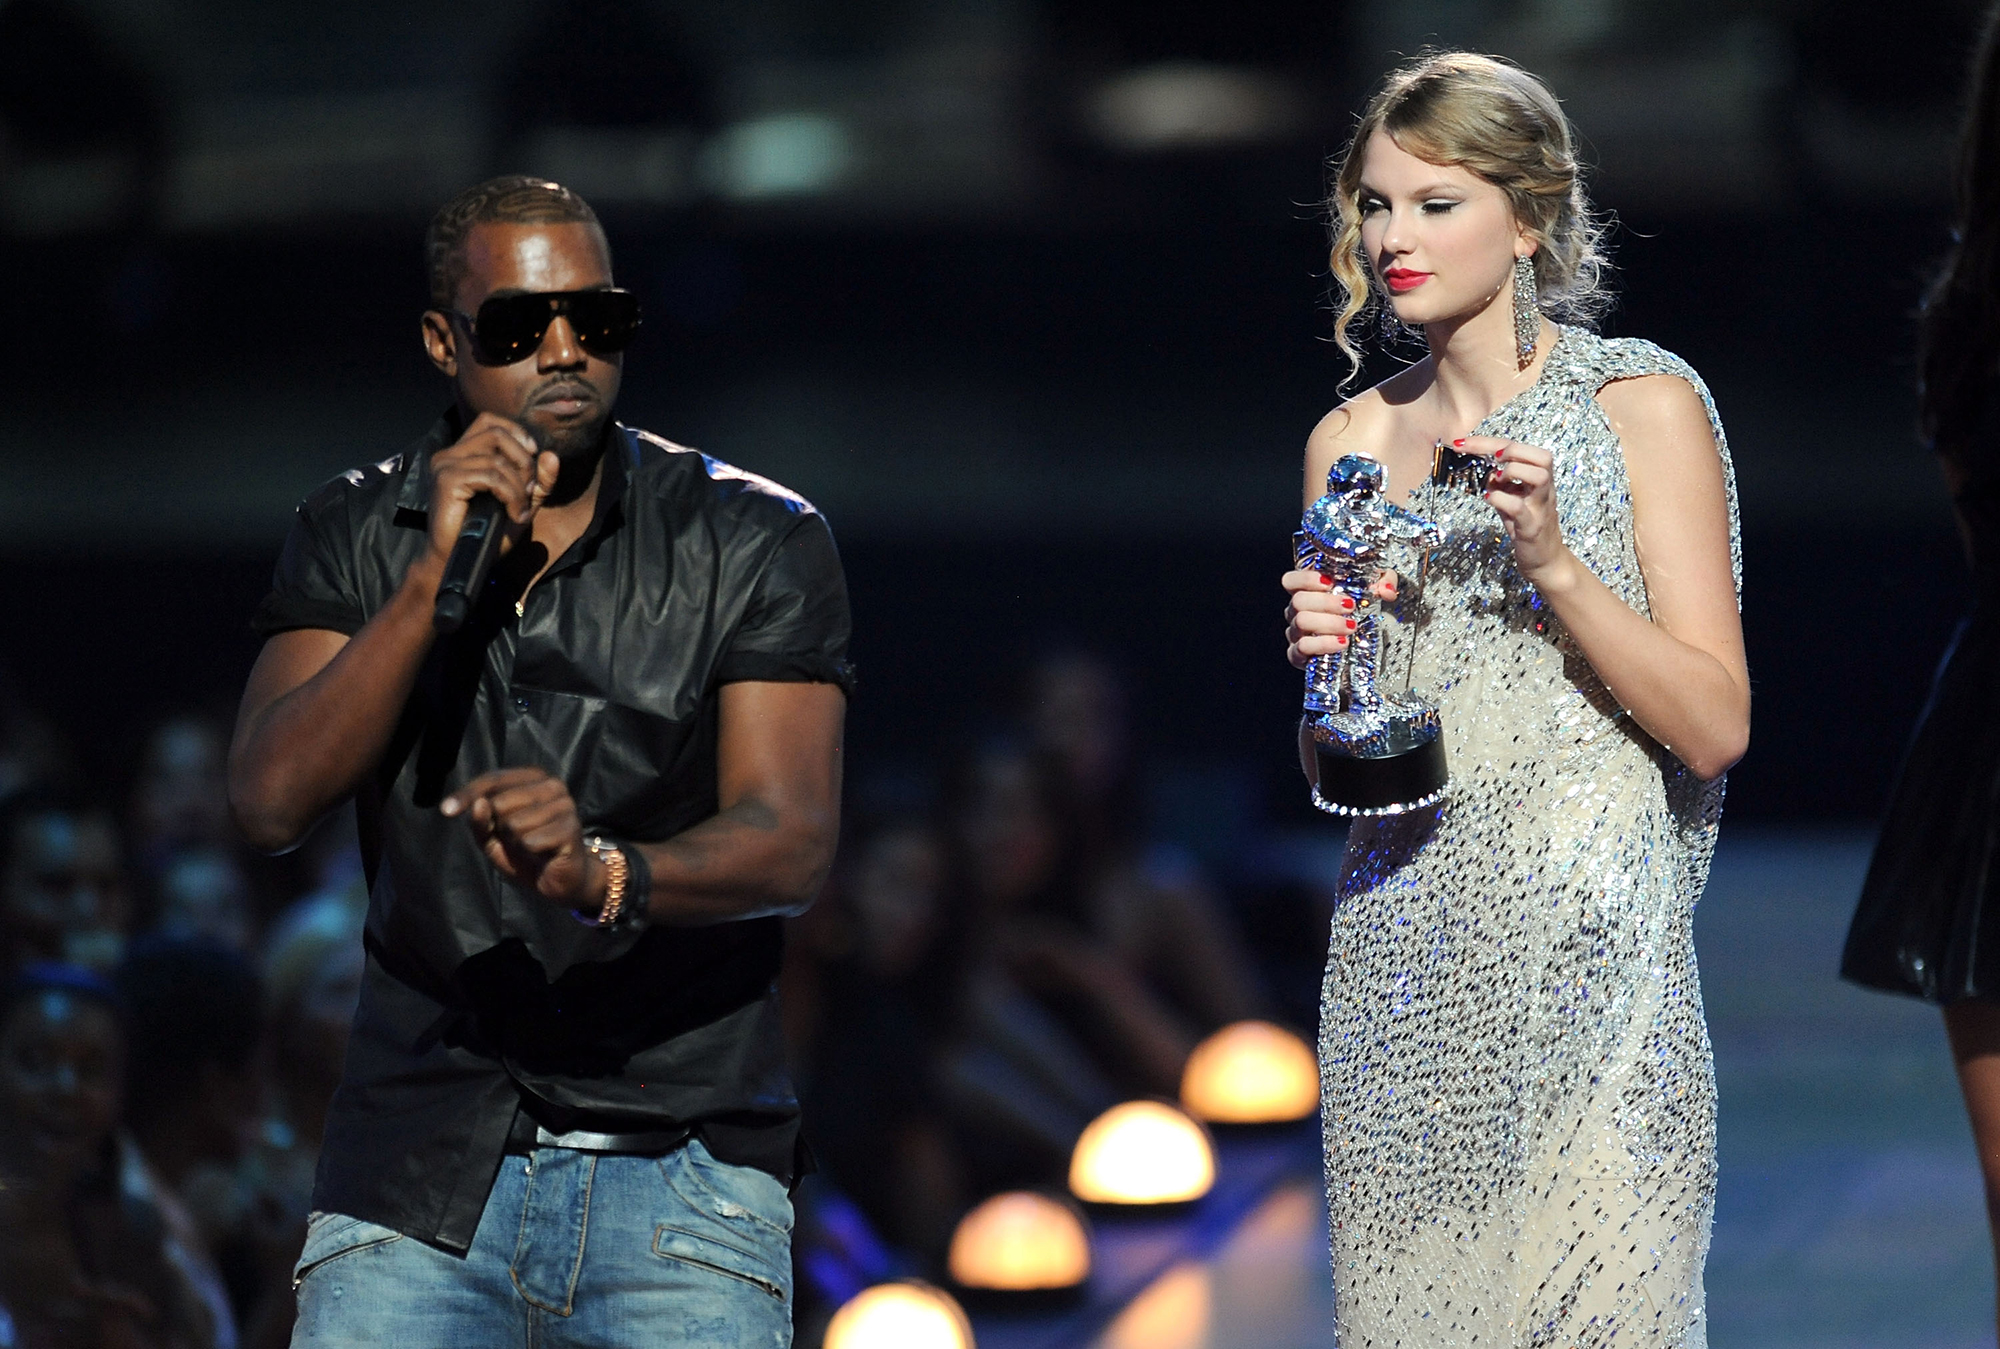 "Taylor Swift Feuds - West first clashed with Swift at the 2009 MTV Video Music Awards when he crashed her acceptance speech to say Beyoncé deserved Swift's award. The musicians buried the hatchet long enough for Swift to present the rapper with the MTV Video Vanguard Award at the 2015 VMAs, but the feud reignited in February 2016 when West rapped in his track ""Famous"" that he ""made that bitch famous,"" referring to Swift."